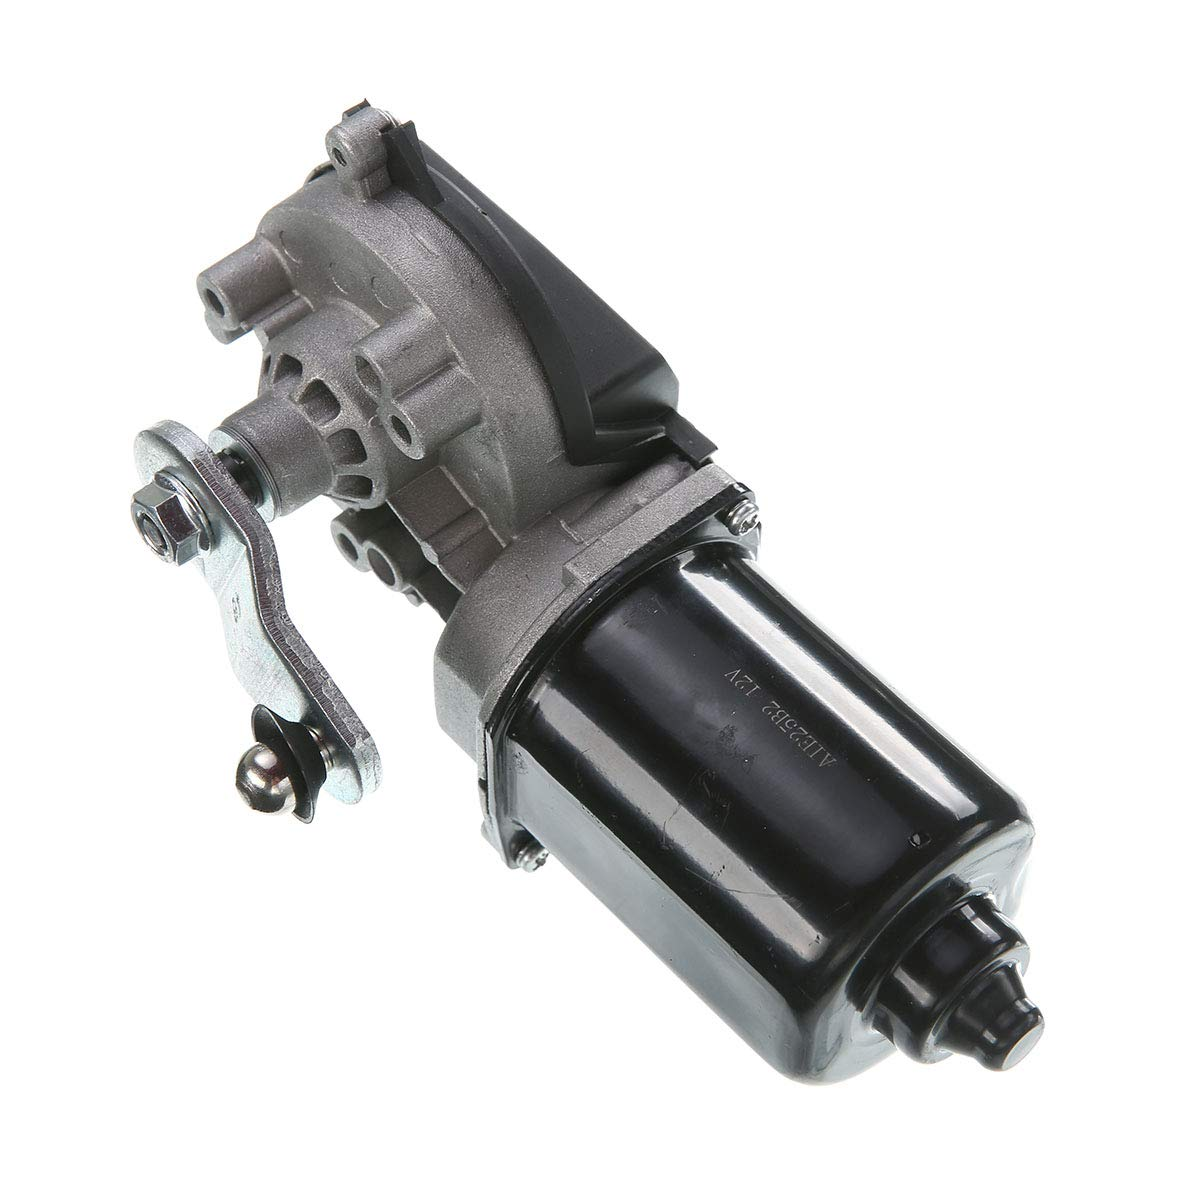 New Premier Gear PGW-6004 Wiper Motor